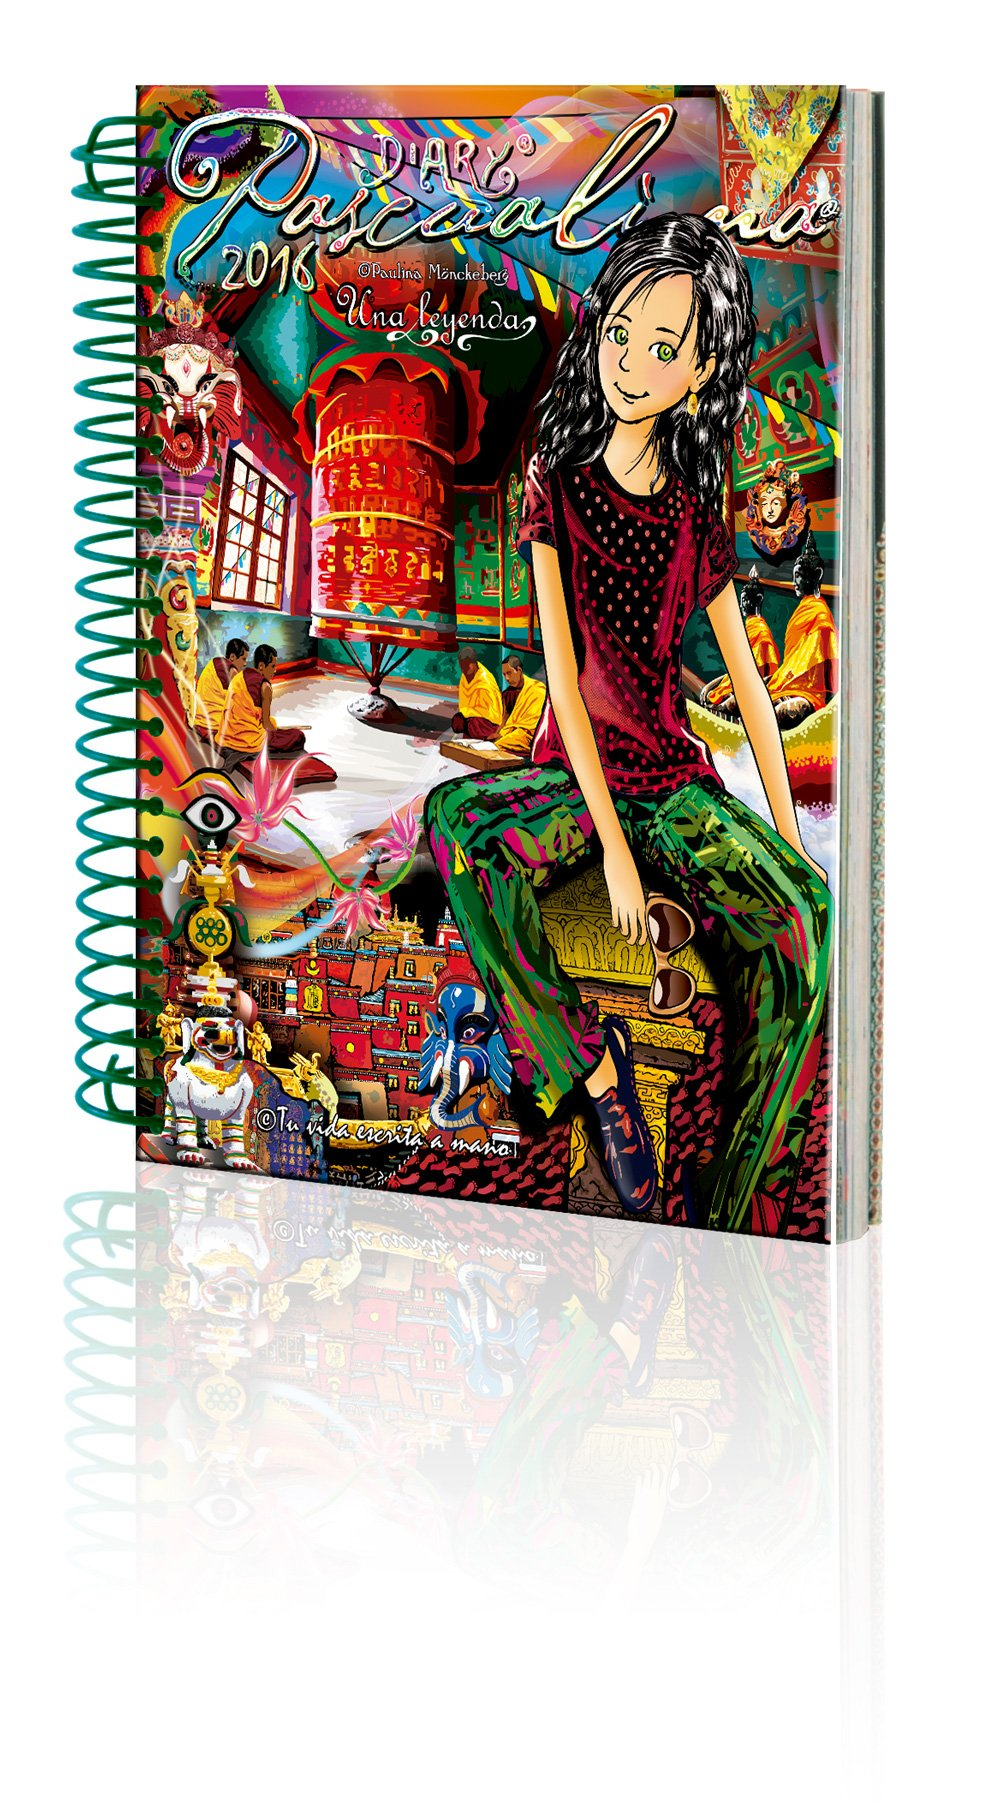 2016 Diary Red Cover.jpg